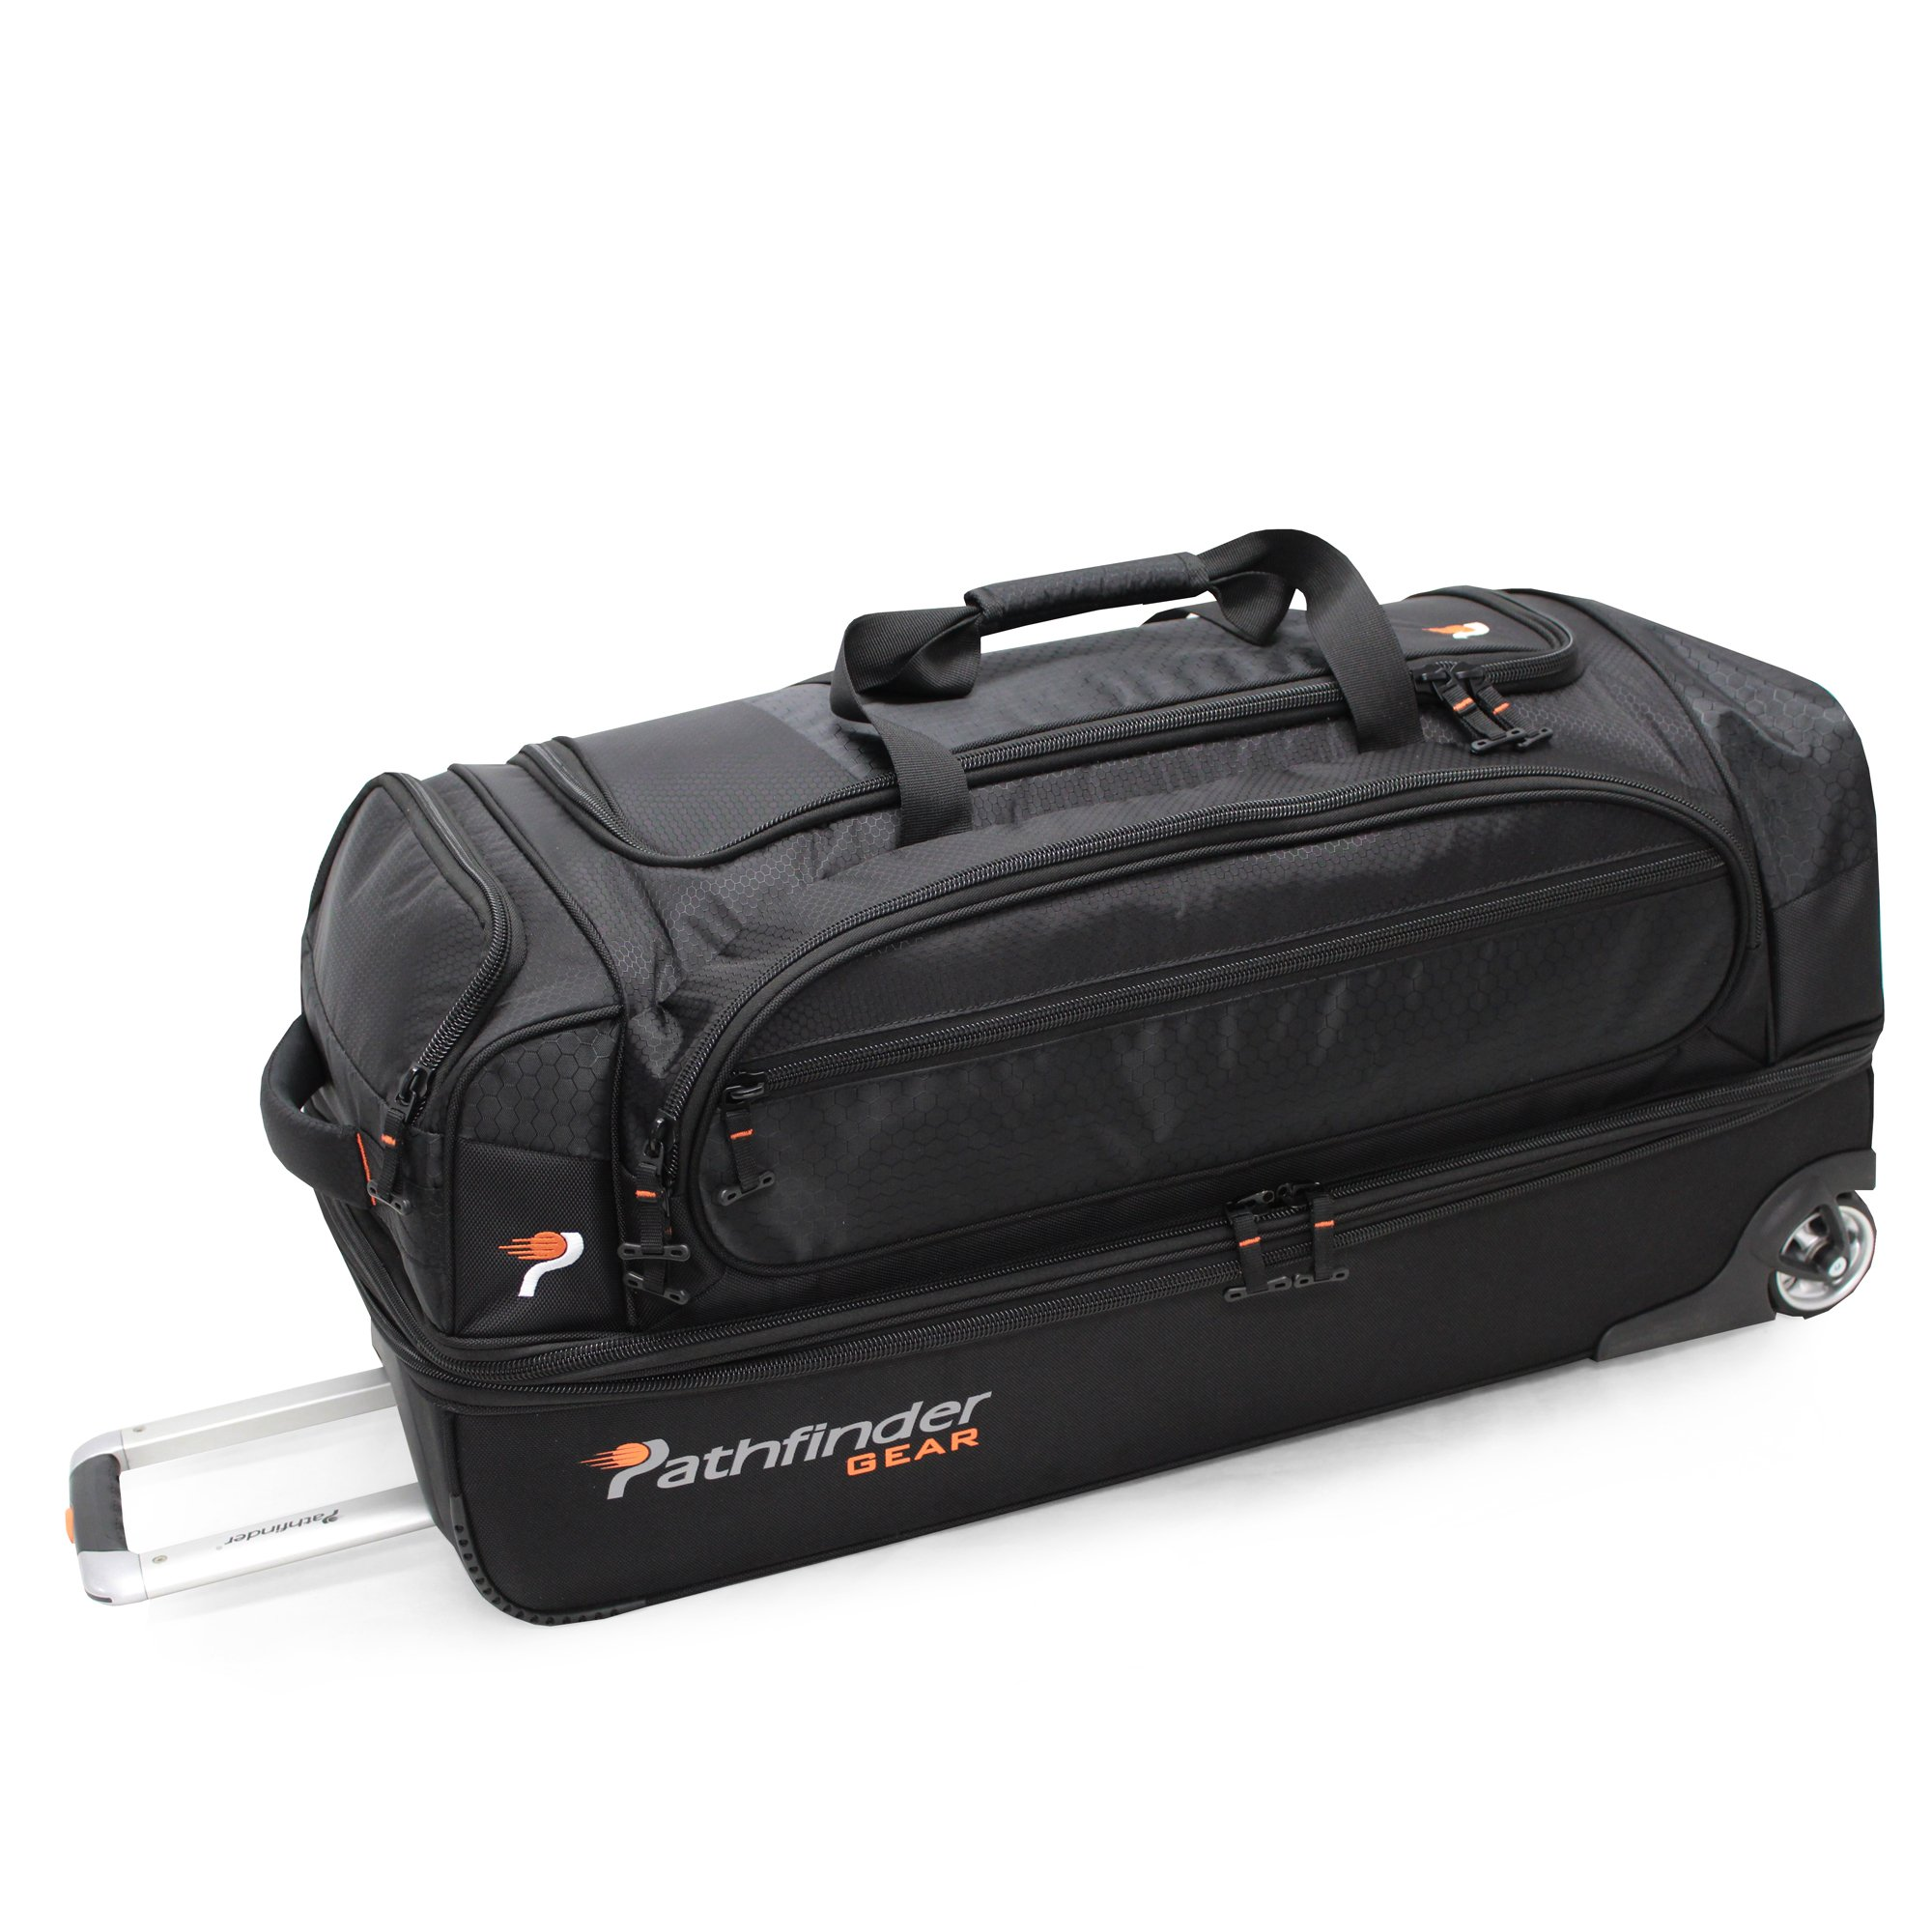 Pathfinder Gear 32 Inch Rolling Drop Bottom Duffel , Black, One Size